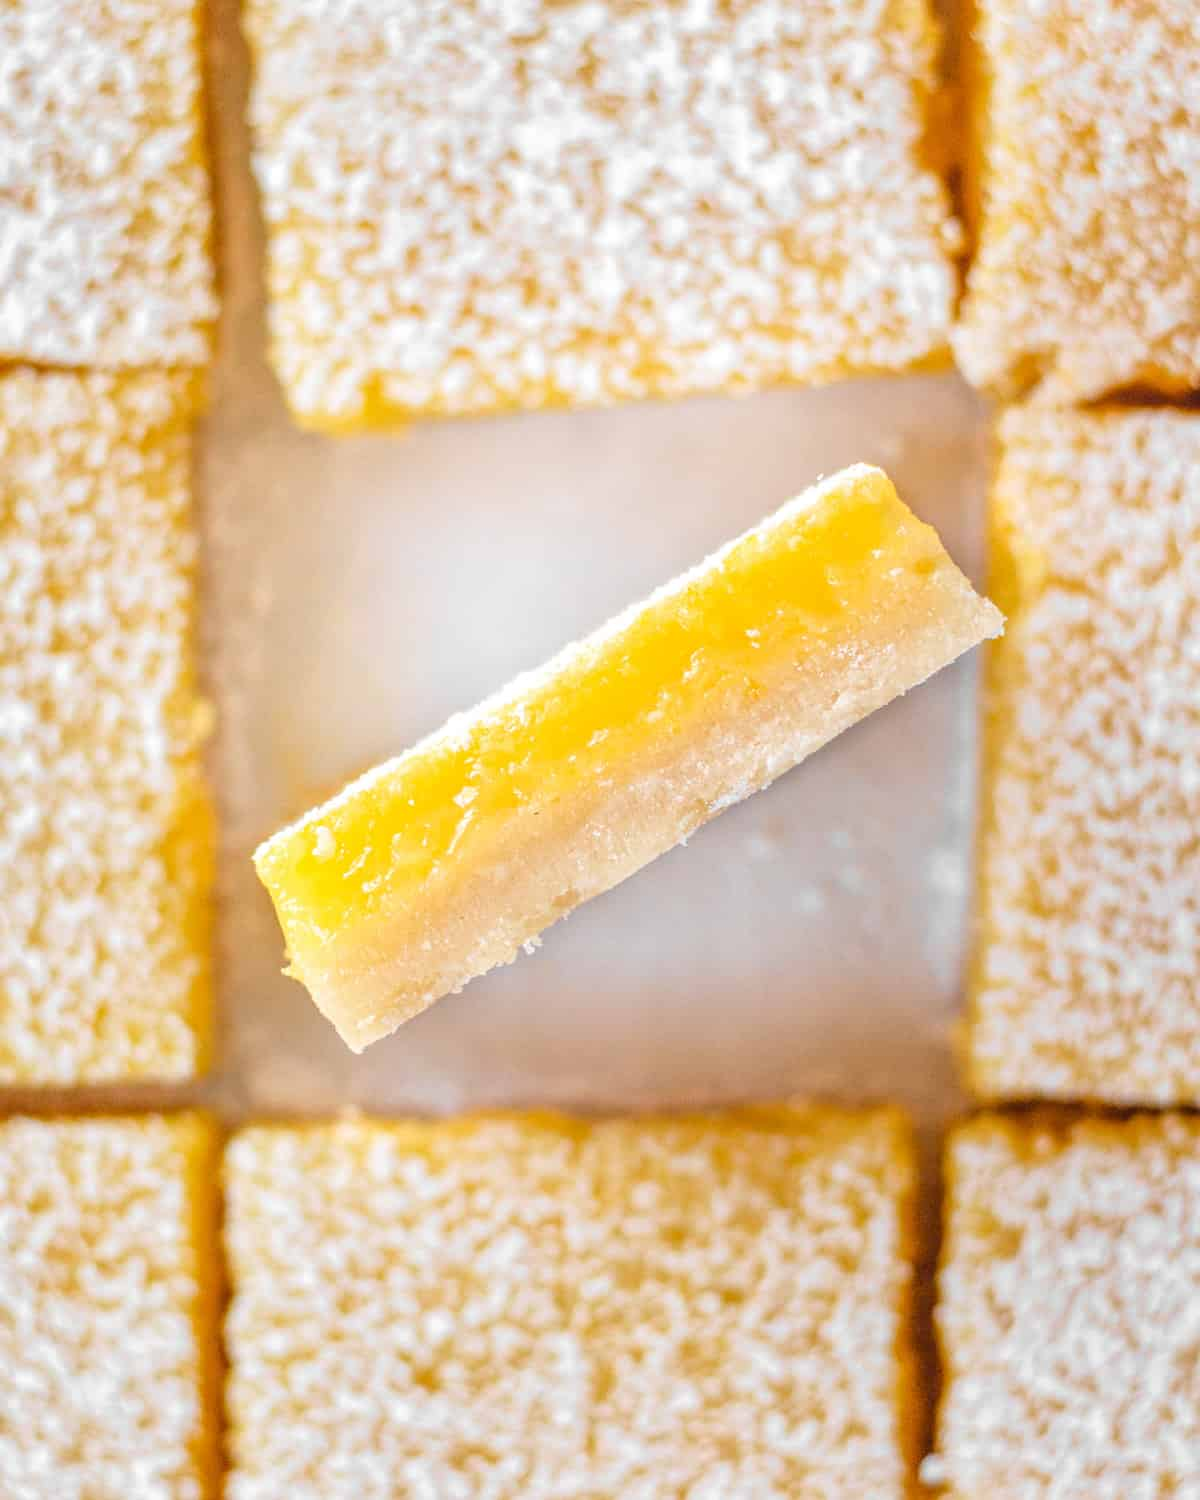 1 lemon bar turned up so you can see the layers of crust and lemon curd.